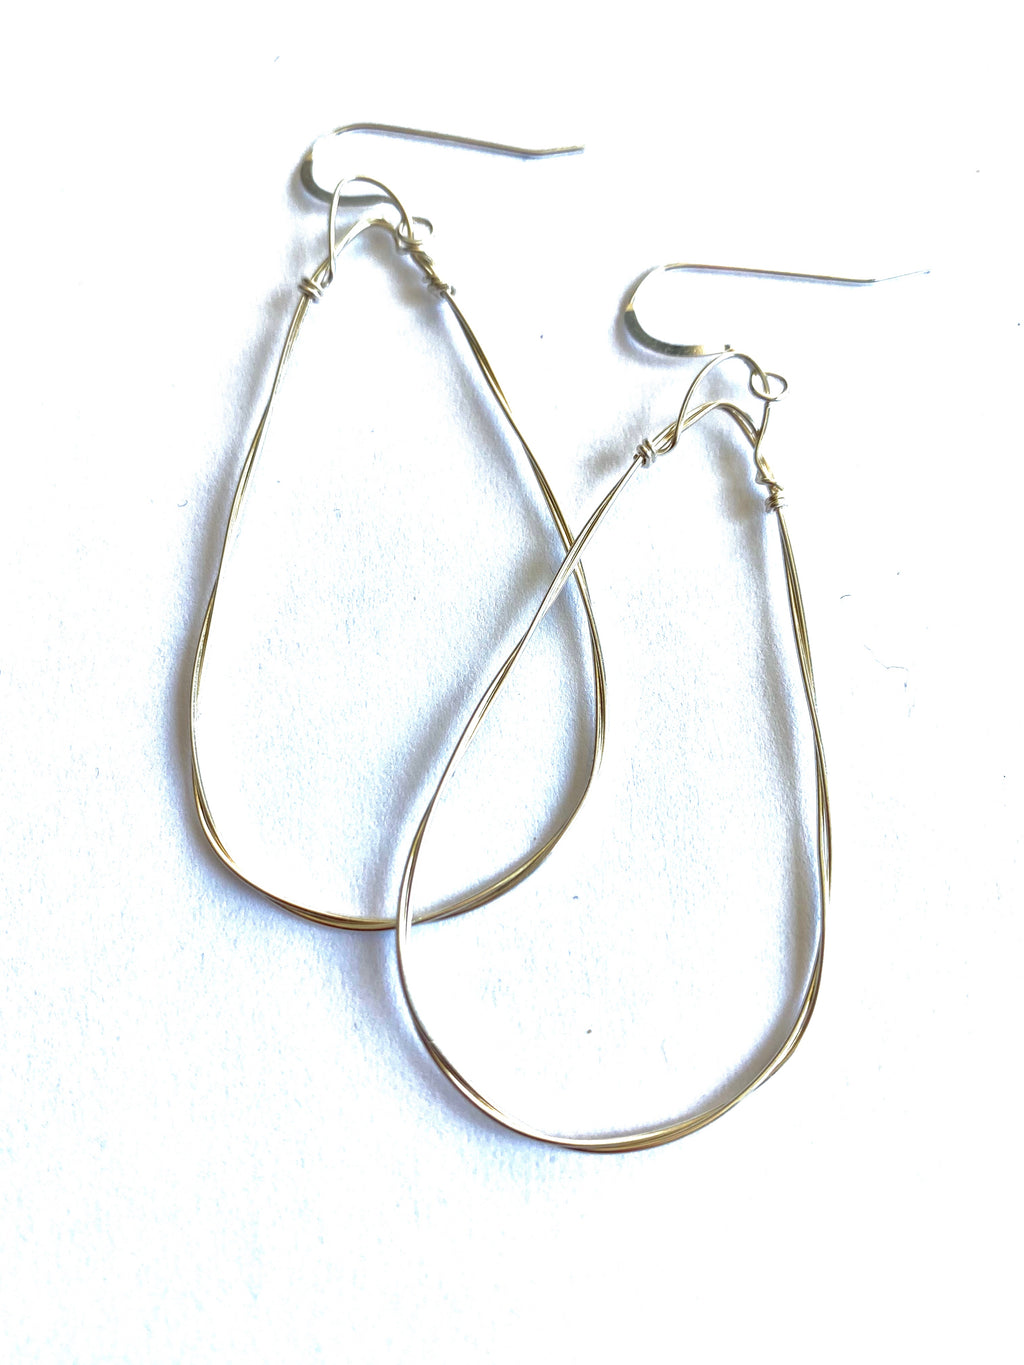 Emma Rose Designs Small Triangle Hoops in Sterling Silver